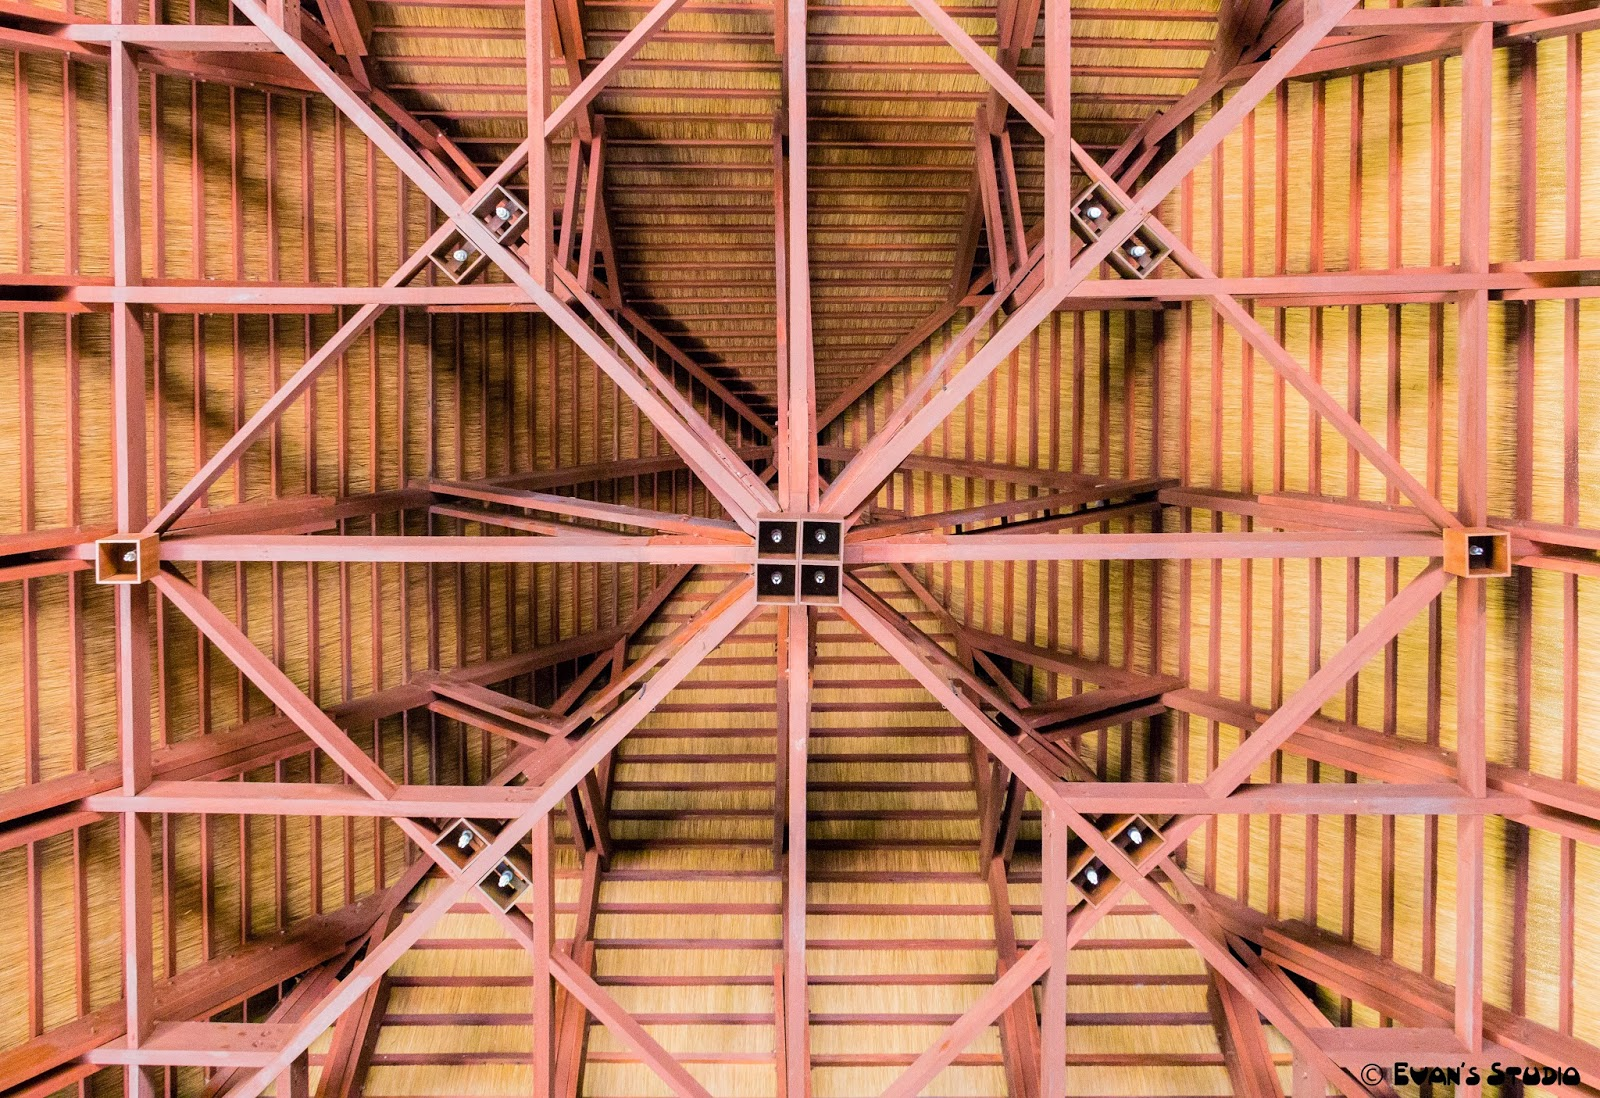 An image showing the interesting symmetrical patterns of the ceiling of Apulit Island Resort's dining hut.